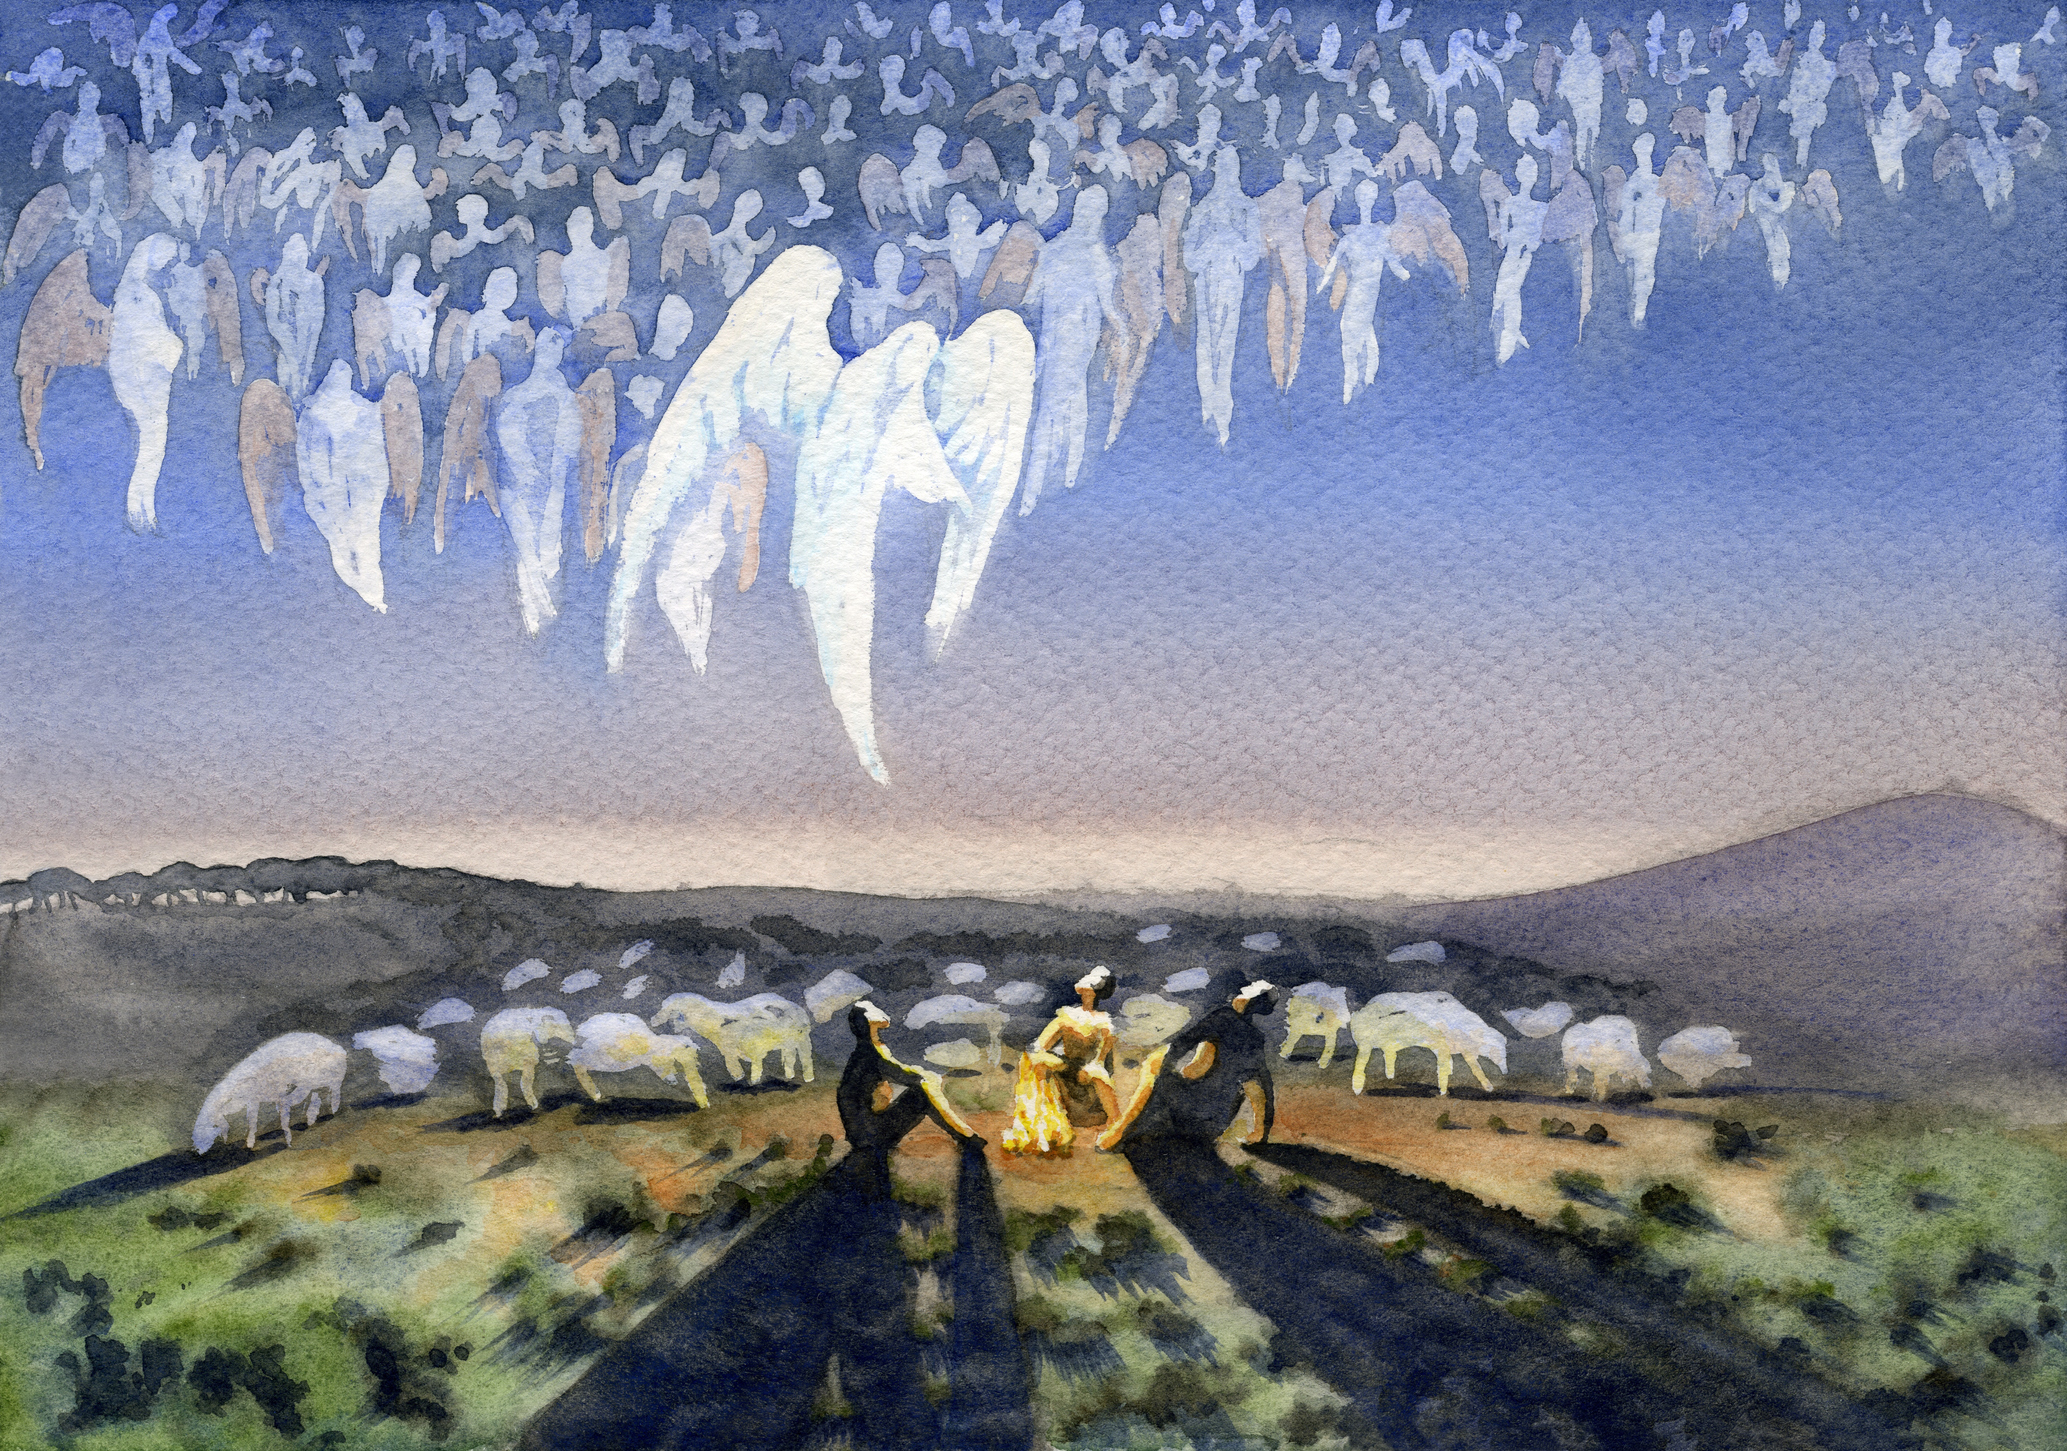 Illustration of the angels appearing to the shepherds, which is the key passage for our sermon.